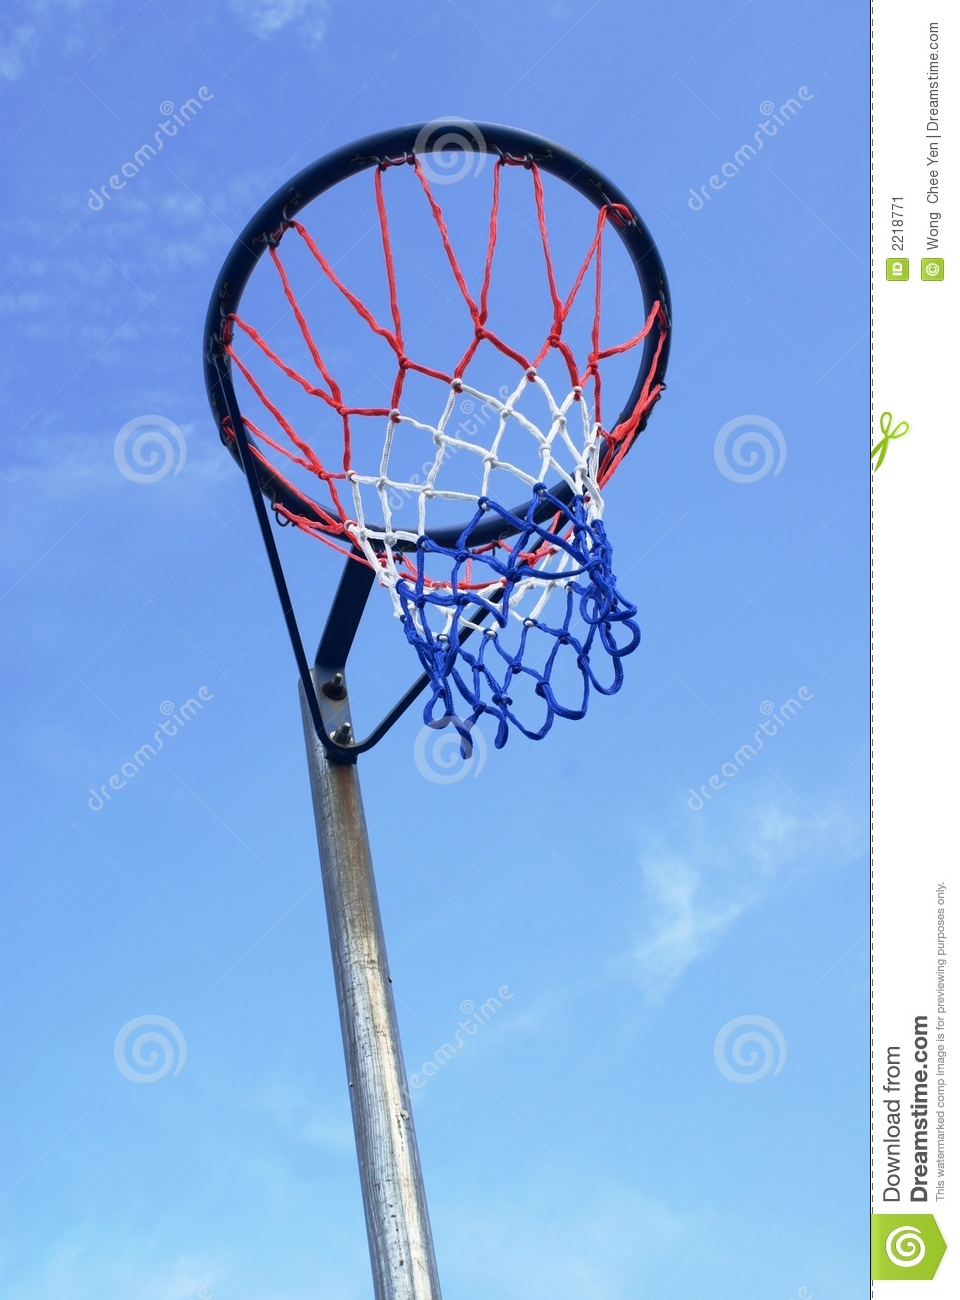 Netball Net Hoop Stock Photos, Images, & Pictures - 61 Images